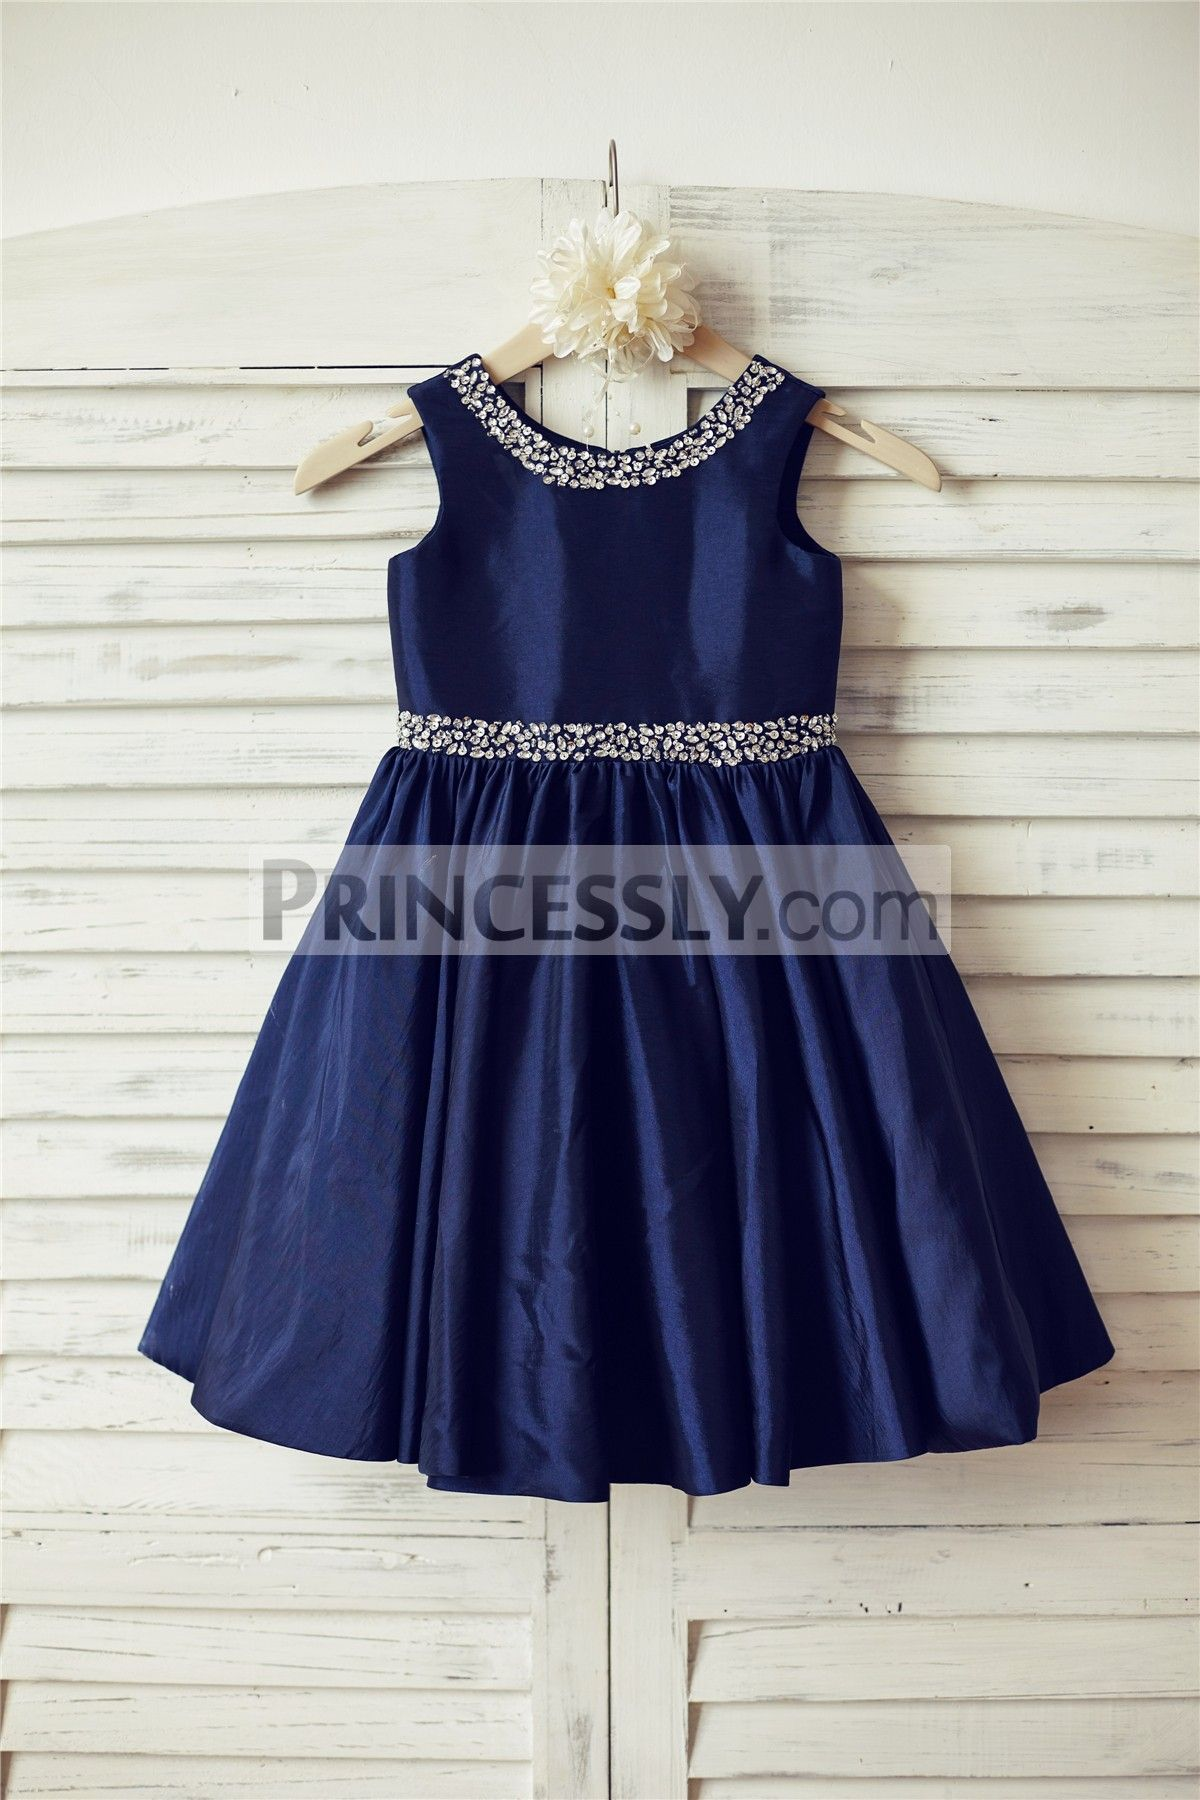 Beaded Navy Blue Taffeta Flower Girl Dress  Flower girl dresses